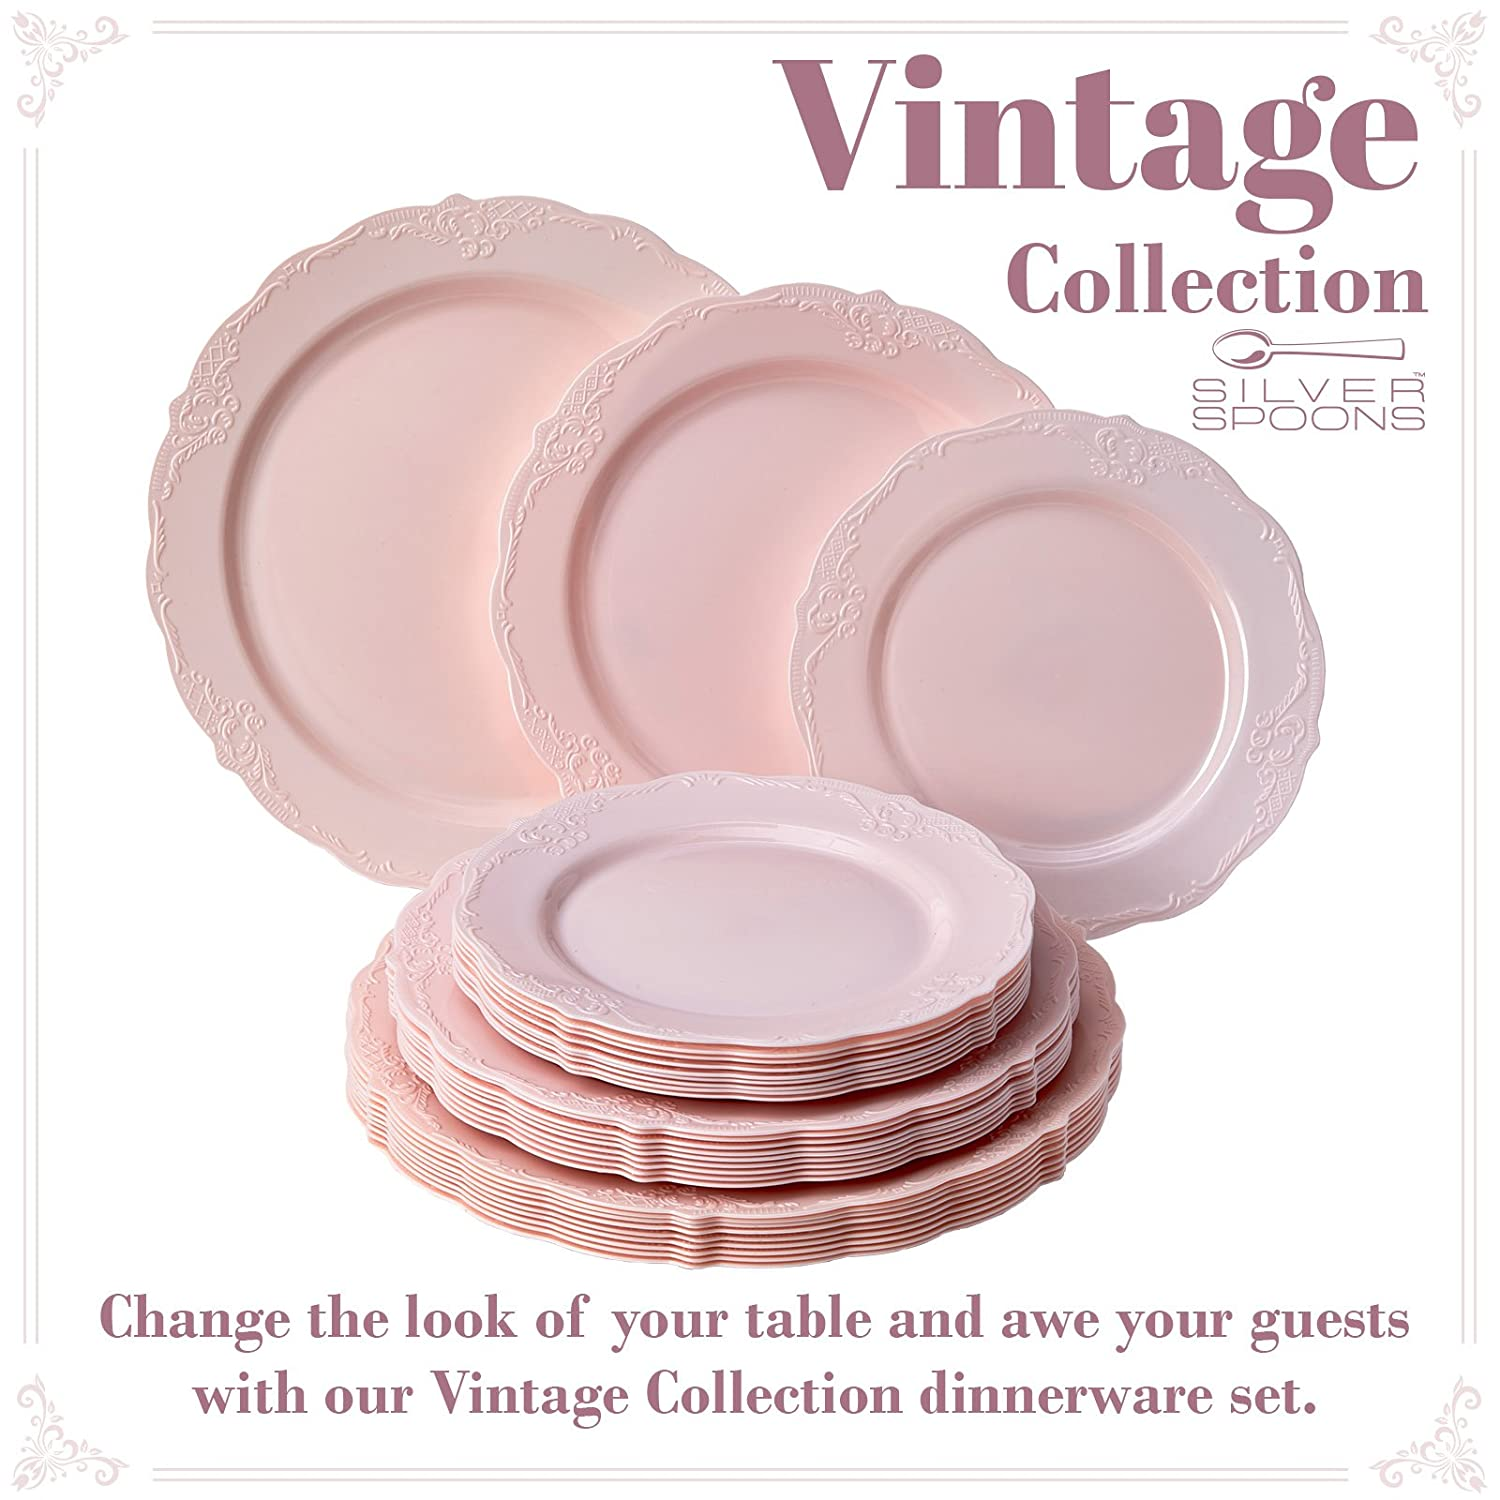 40 Dinner Plates Blush Vintage Collection Dinnerware Set Party Disposable 120 PC Elegant Plastic Dishes Upscale China Look 40 Dessert Plates for Fine Dining 40 Salad Plates